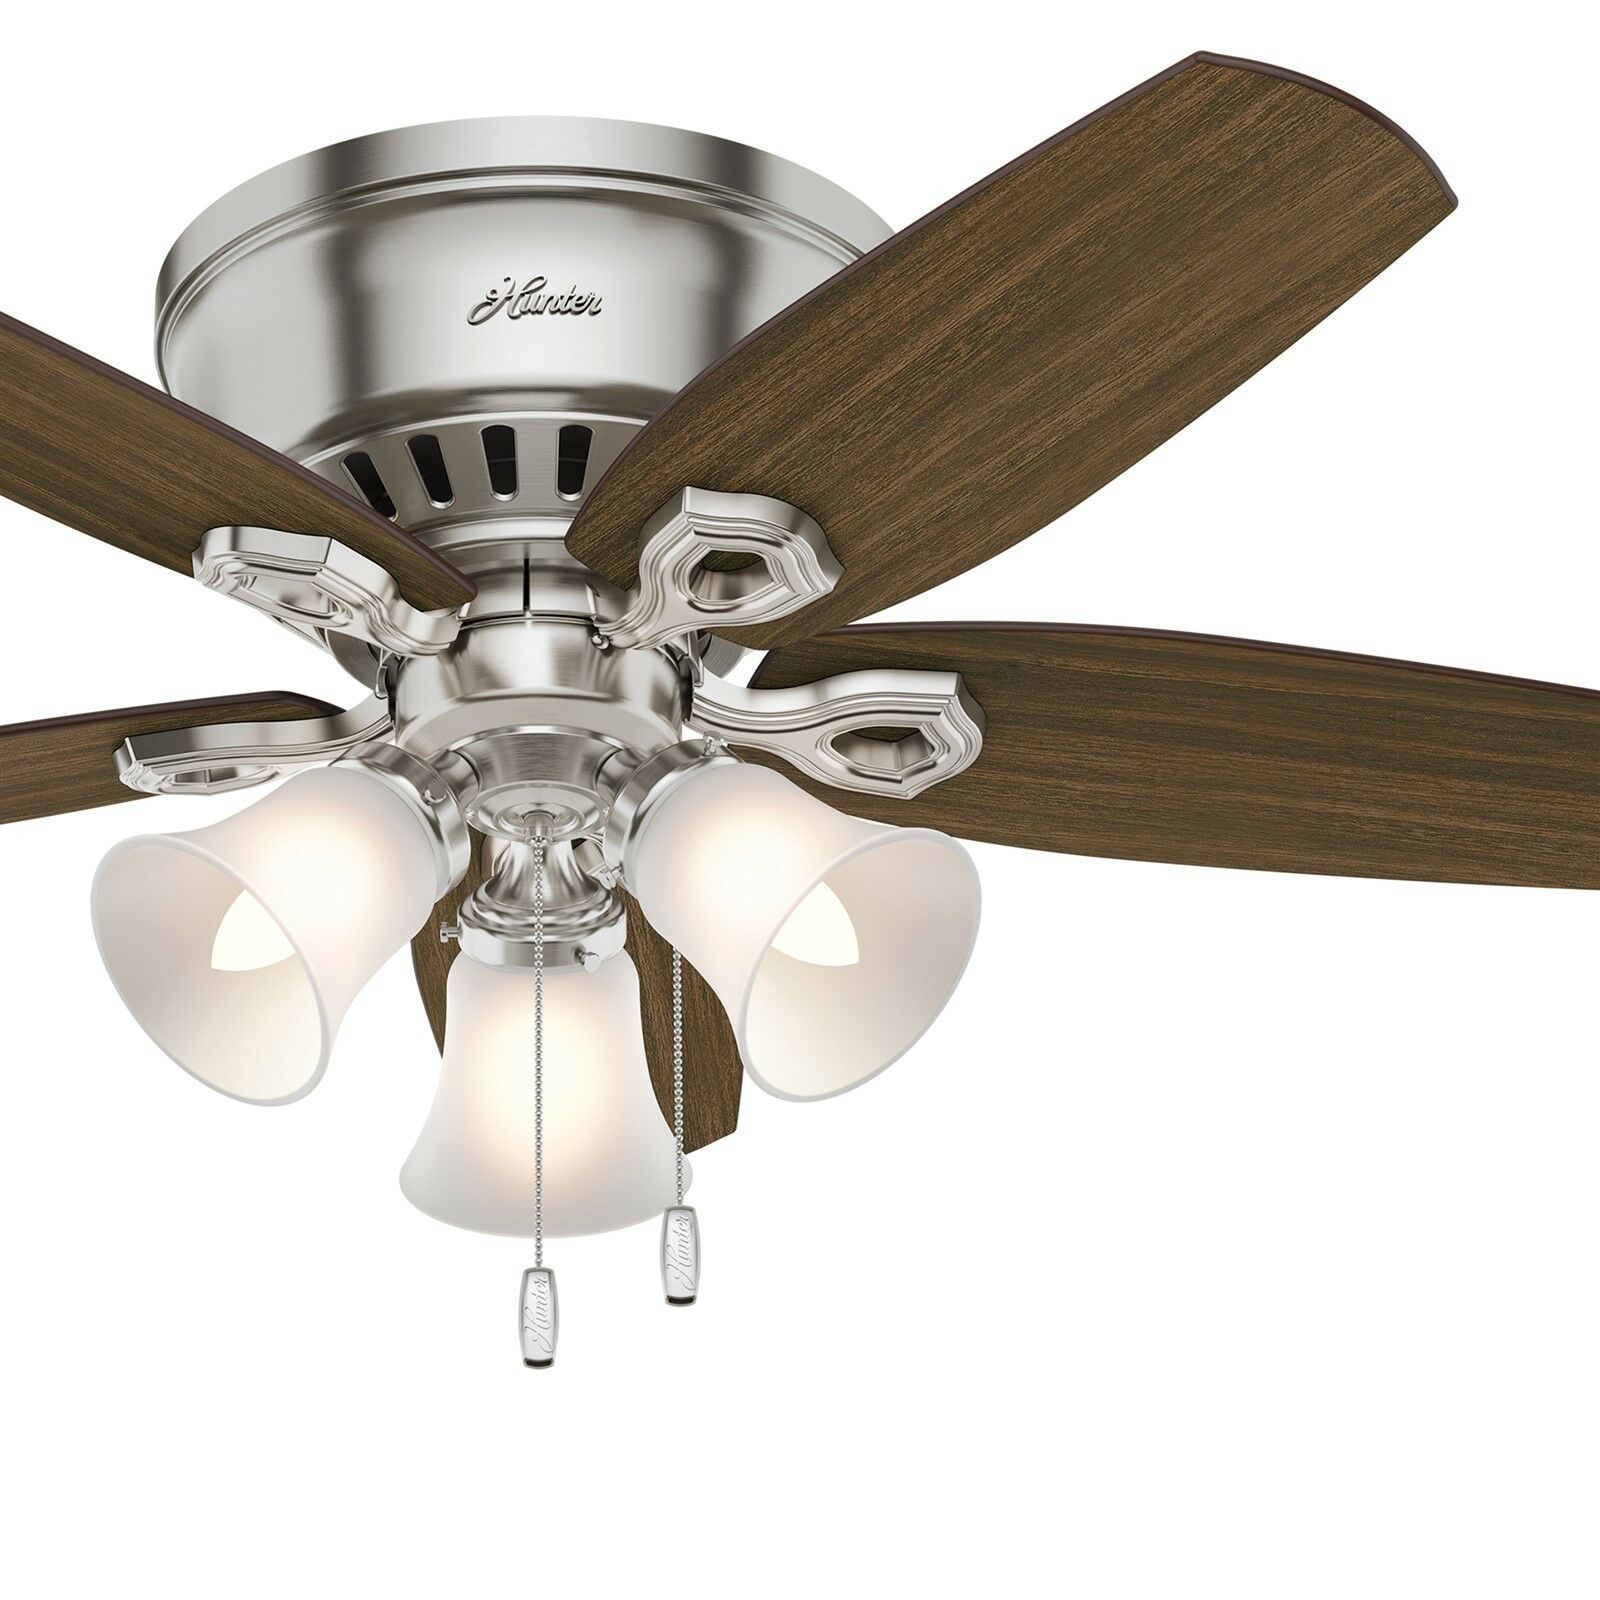 Hunter Fan 42 Inch Low Profile Ceiling Fan In Brushed Nickel With 3 Led Lights 840304132171 Ebay